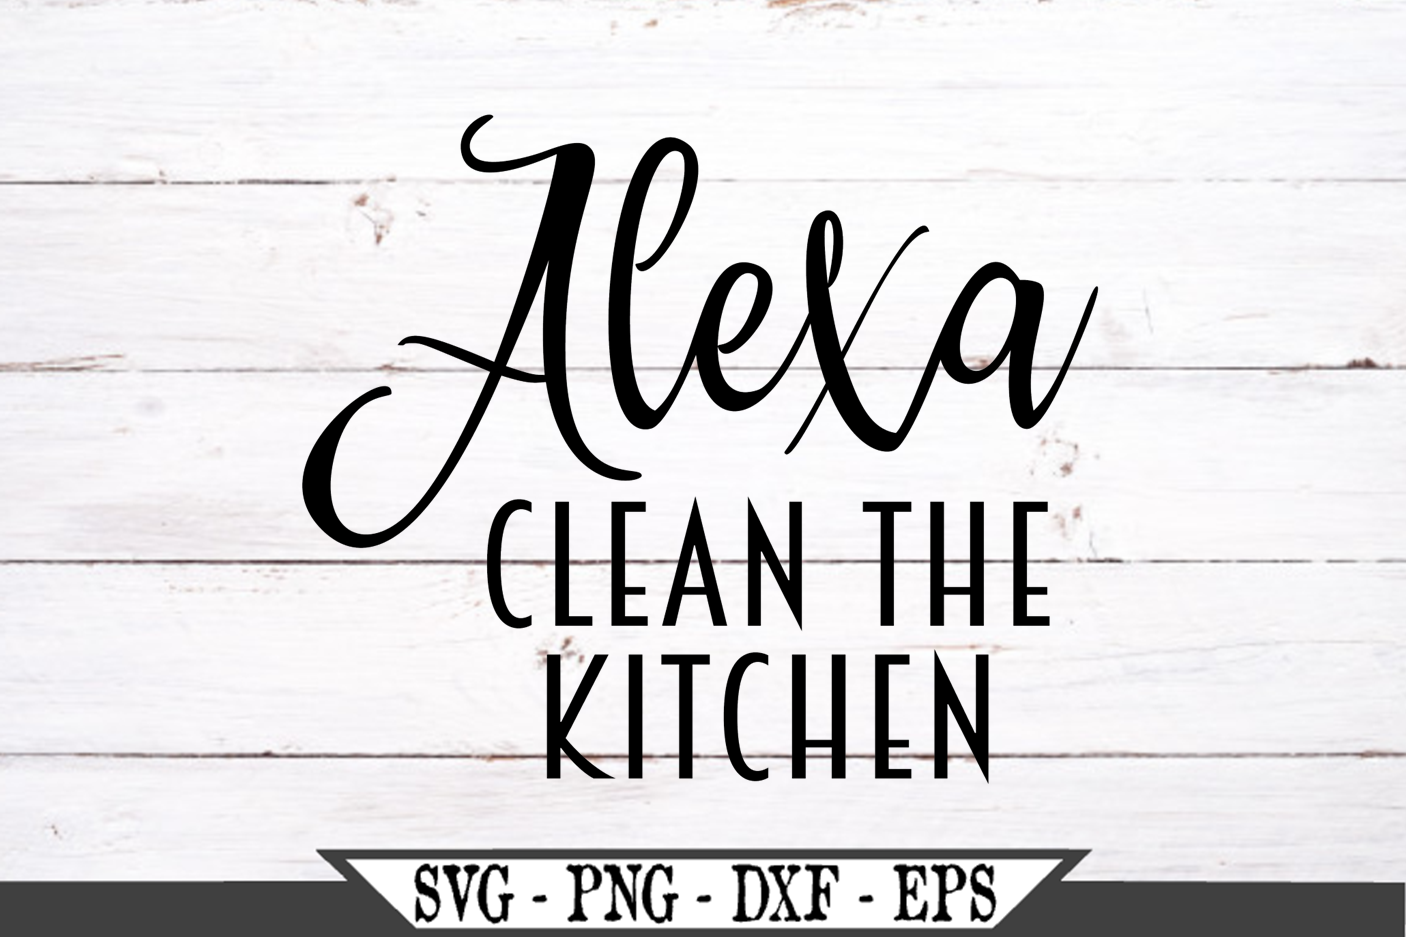 Alexa Clean The Kitchen SVG example image 2